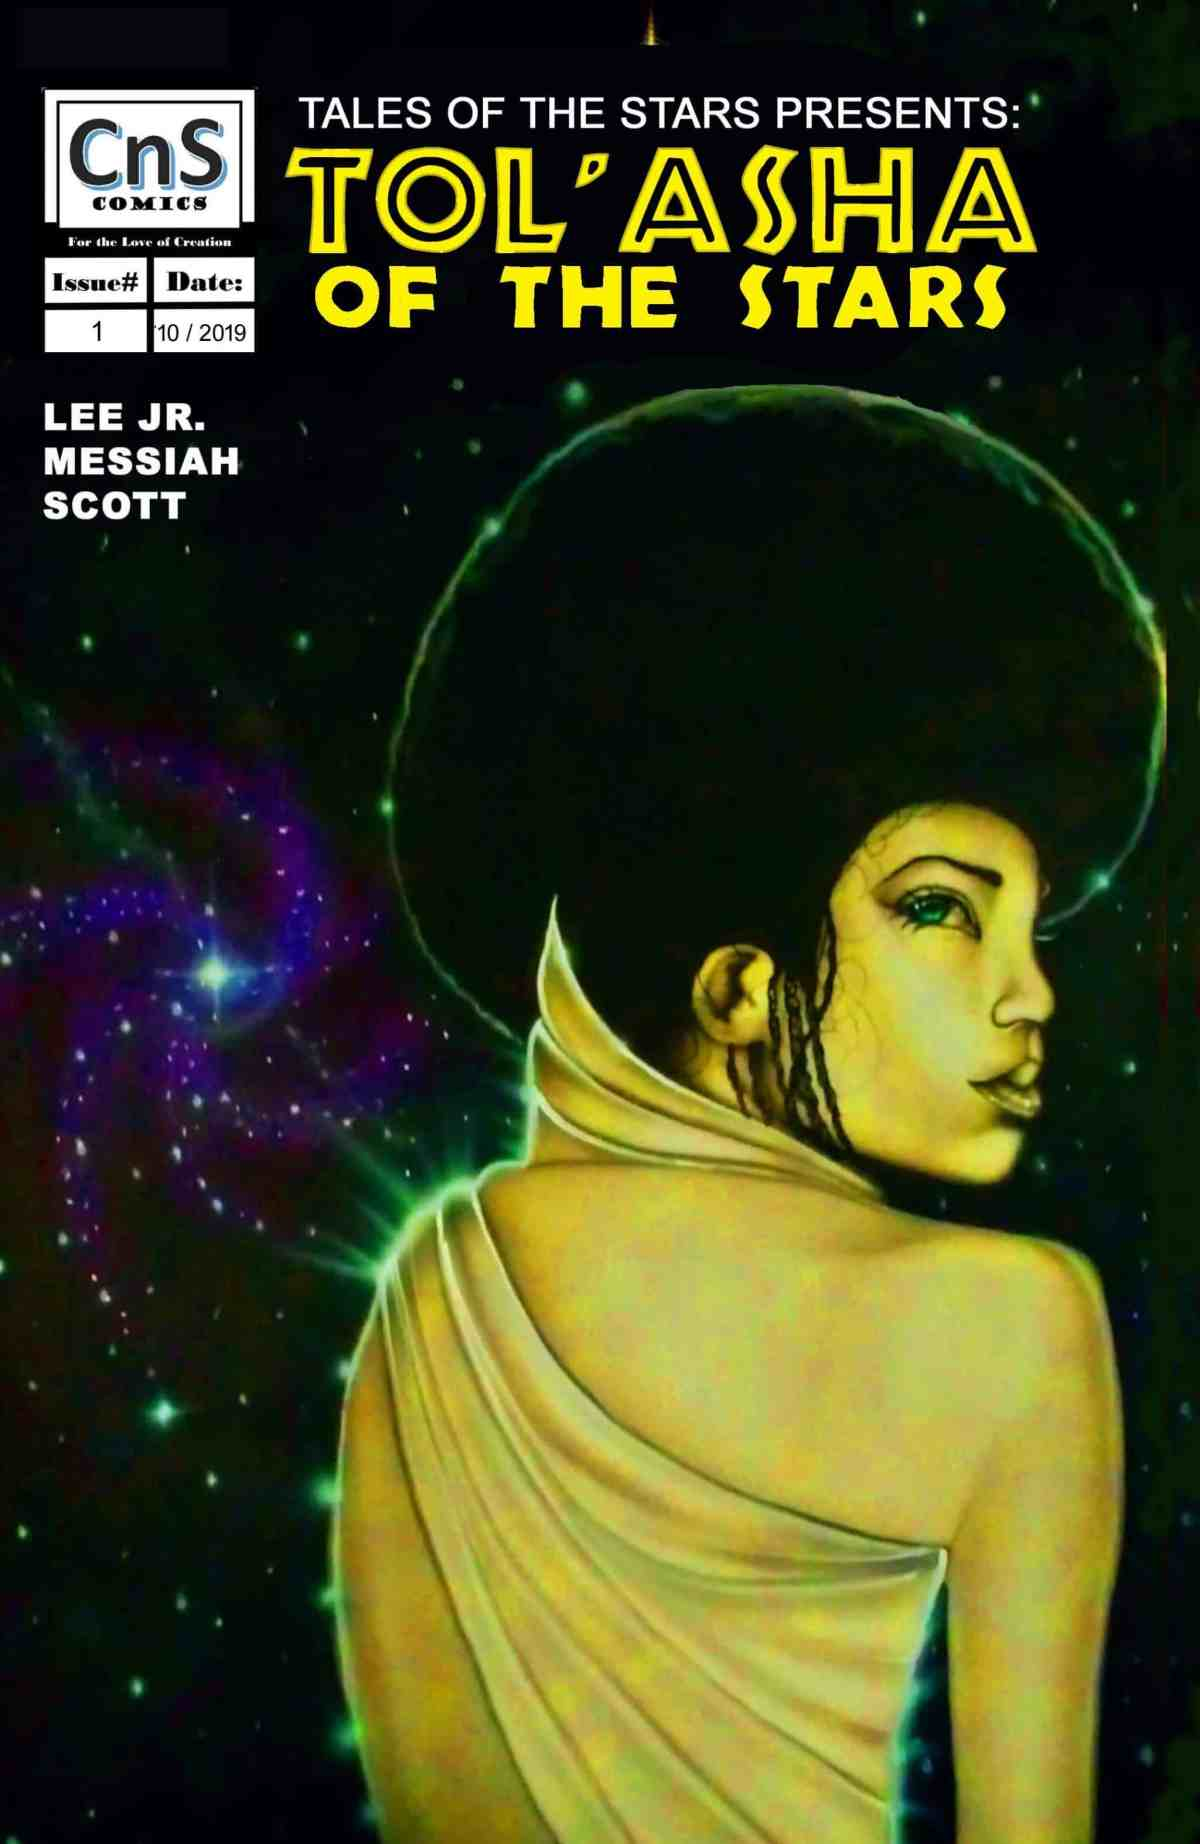 TOS Issue #1 Limited Cover. Art by Stephen Jones.  Availability limited. Issue #1 is available in both print and digital.